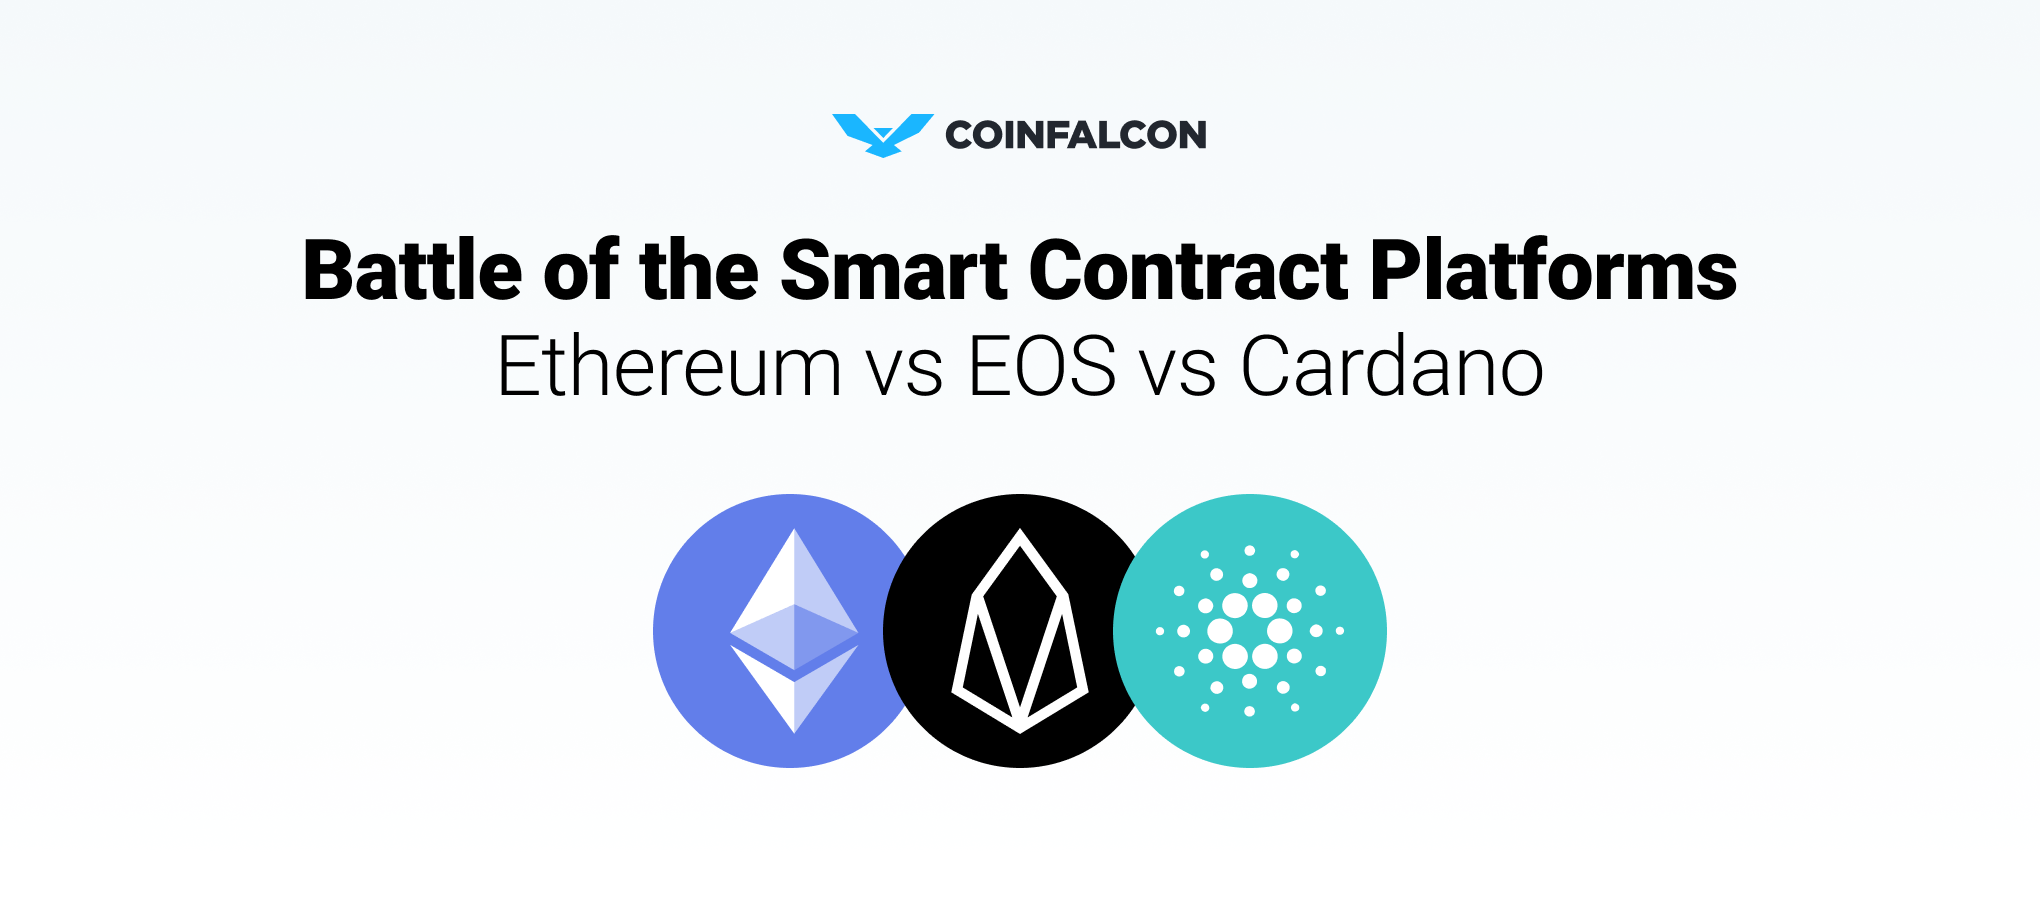 eos cryptocurrency meaning